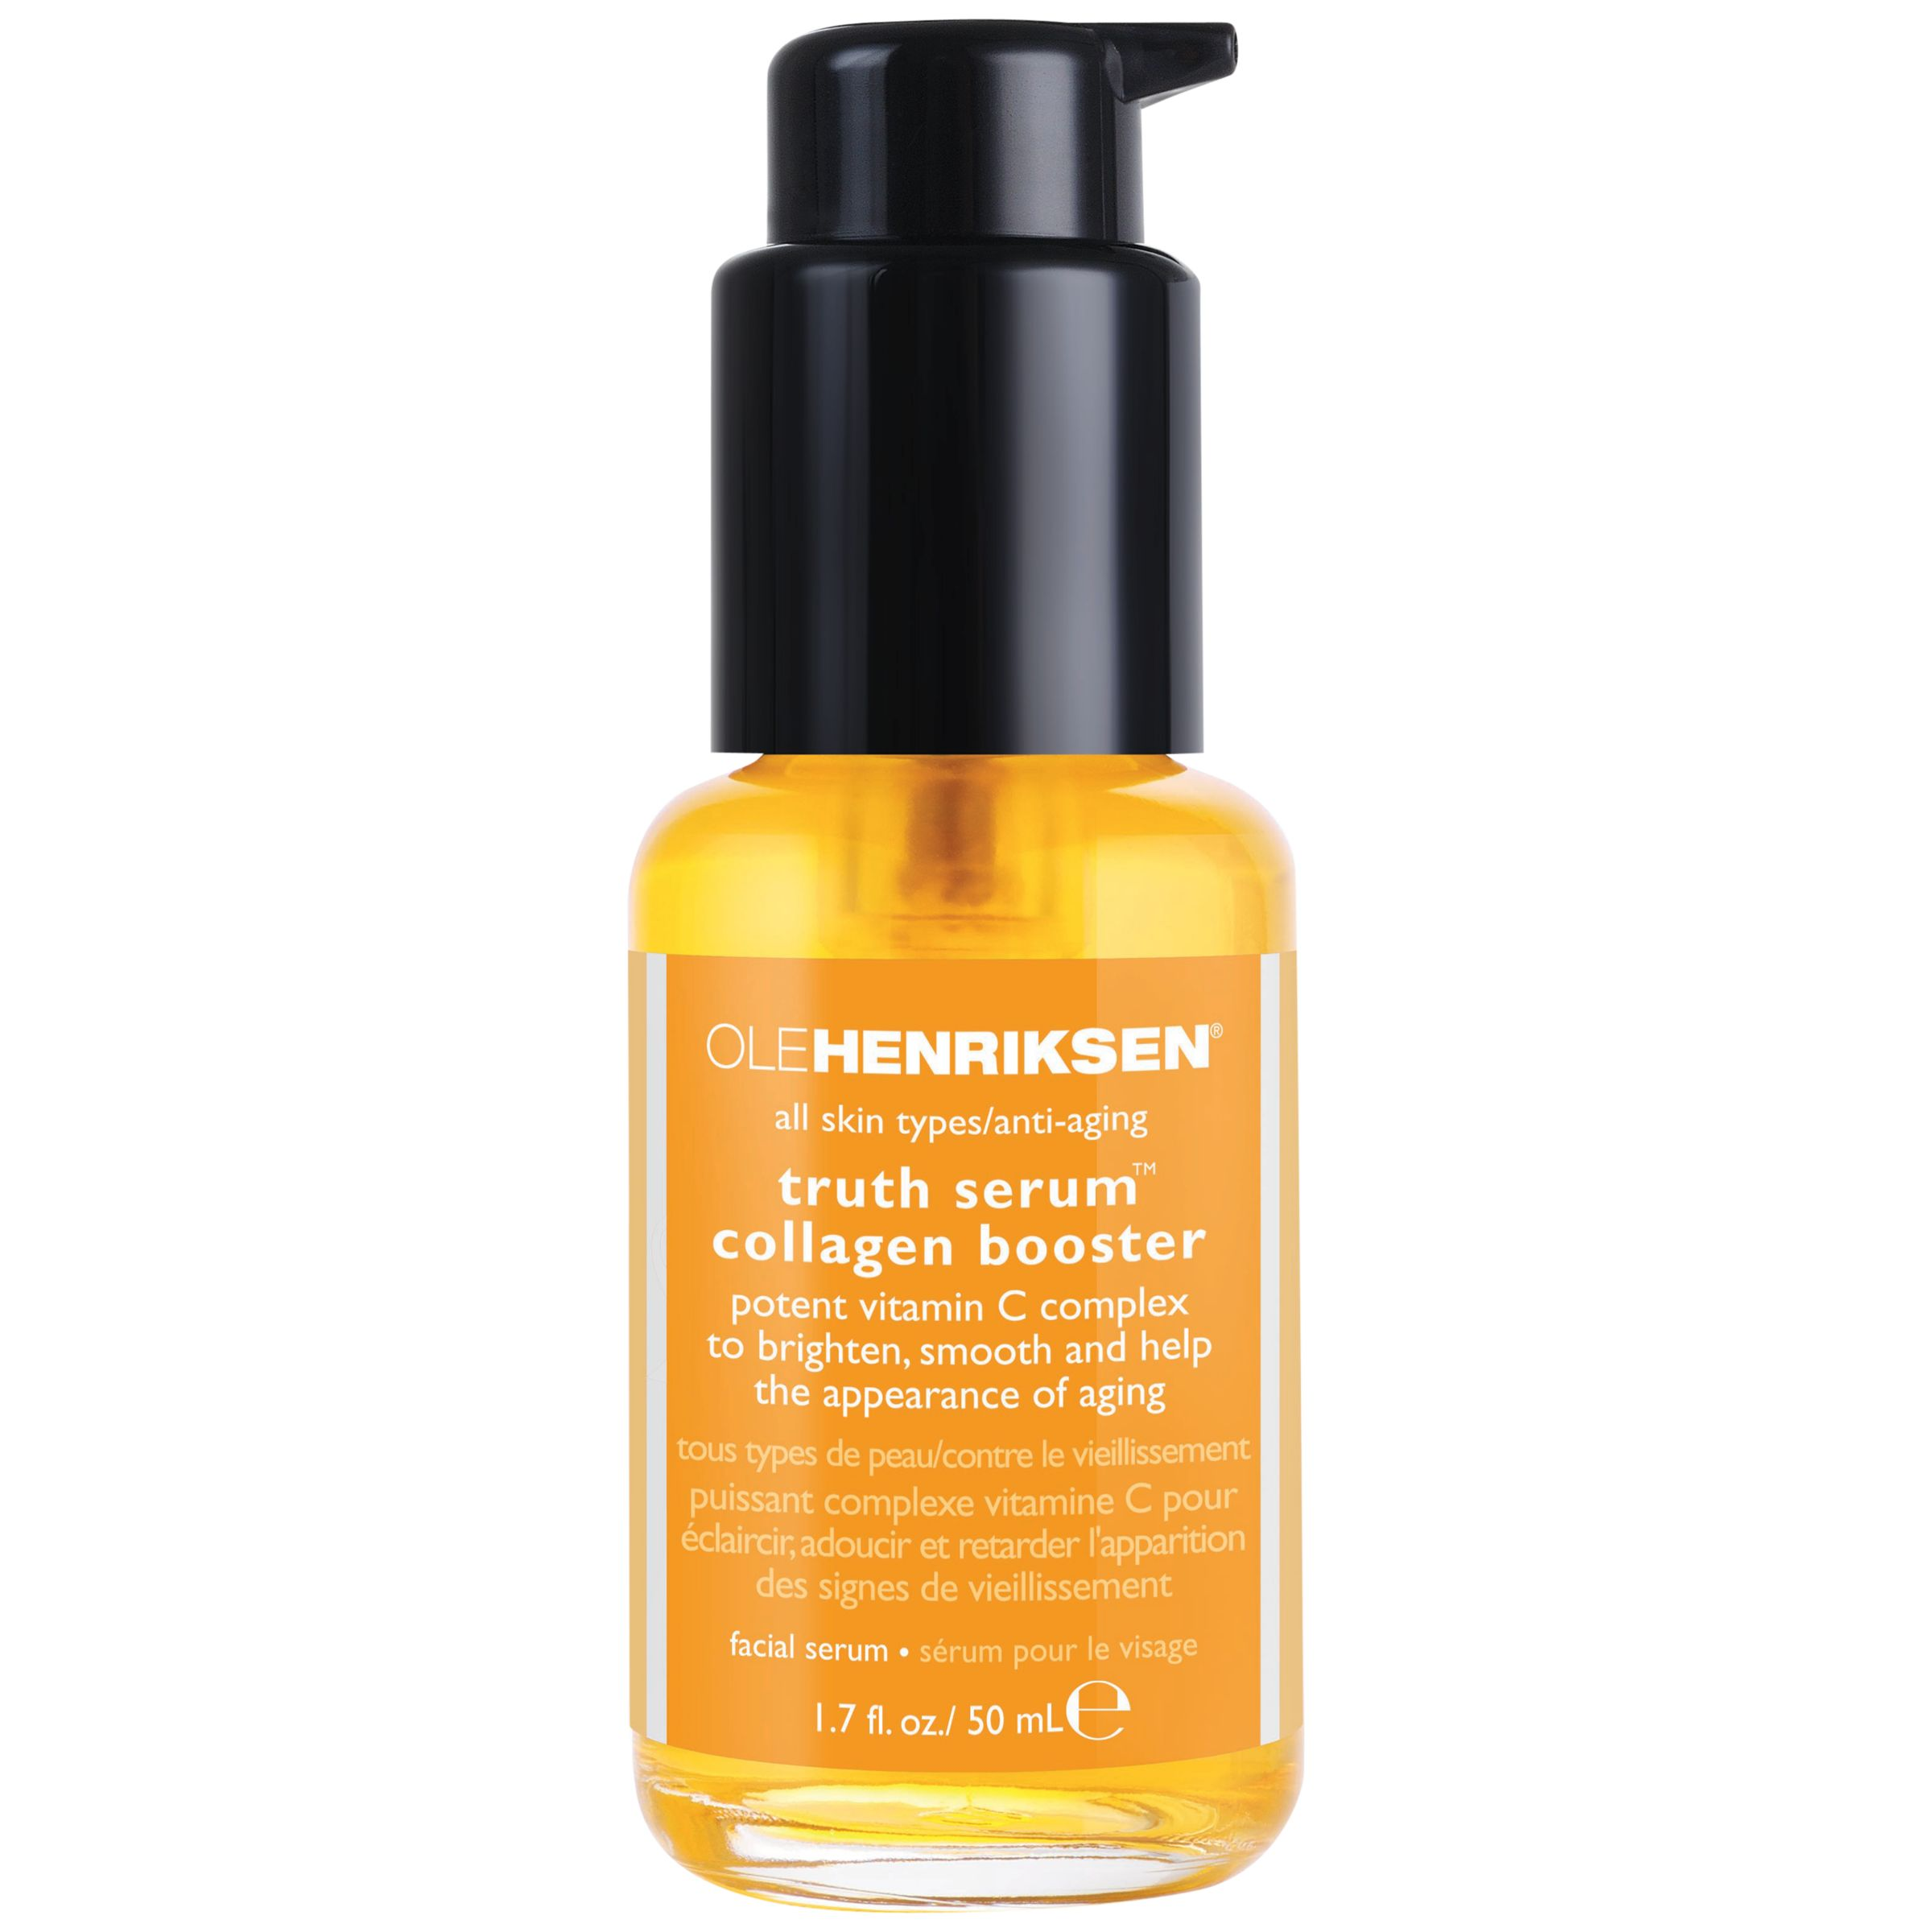 OLEHENRIKSEN OLEHENRIKSEN Truth Serum® Collagen Booster, 50ml